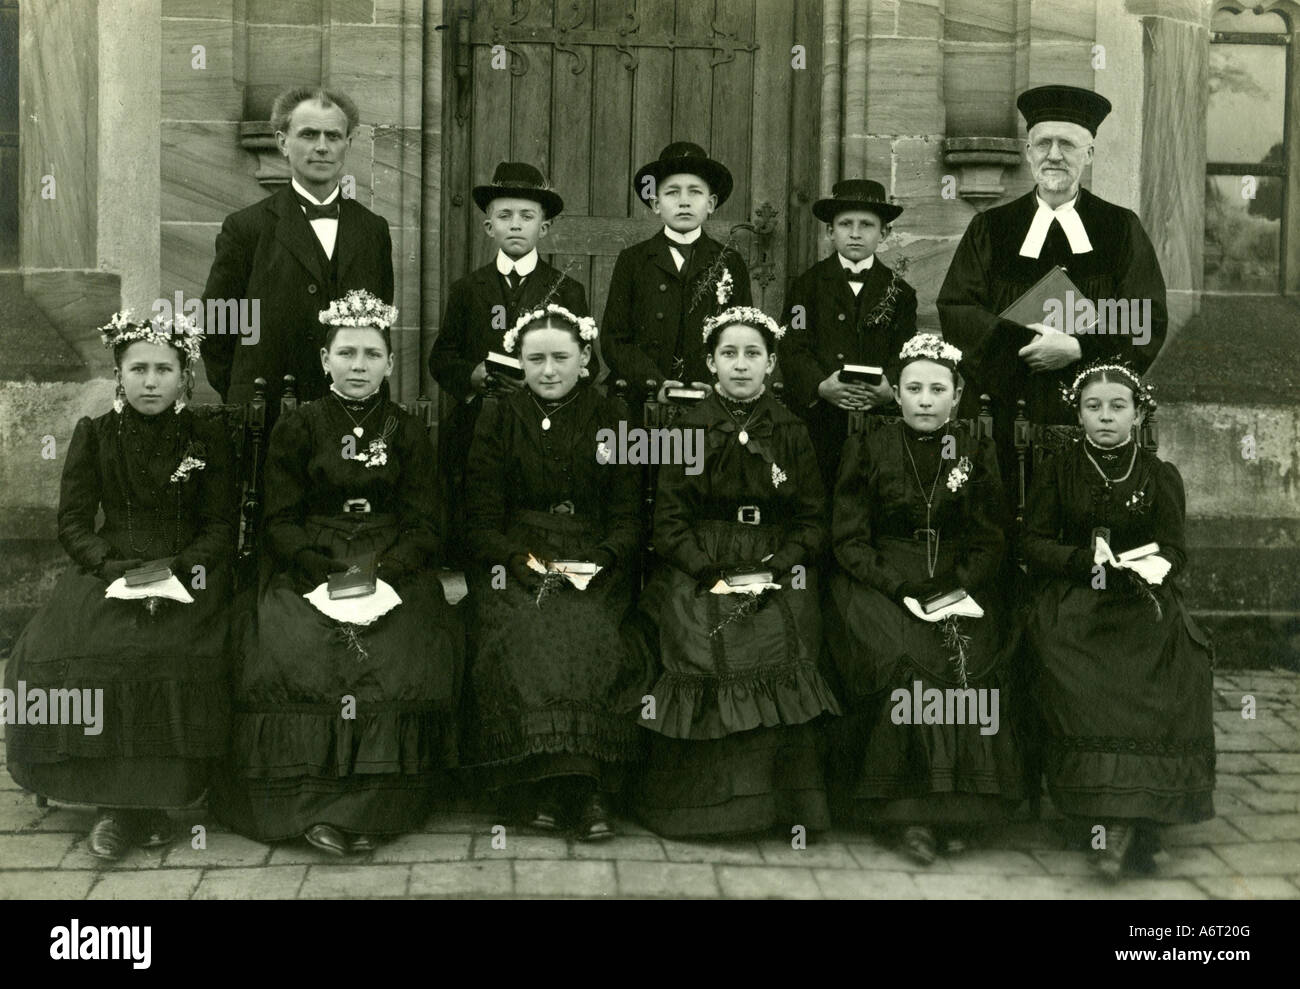 religion, christianity, ceremonies, confirmation, group picture, confirmands, circa 1910, Additional-Rights-Clearances - Stock Image